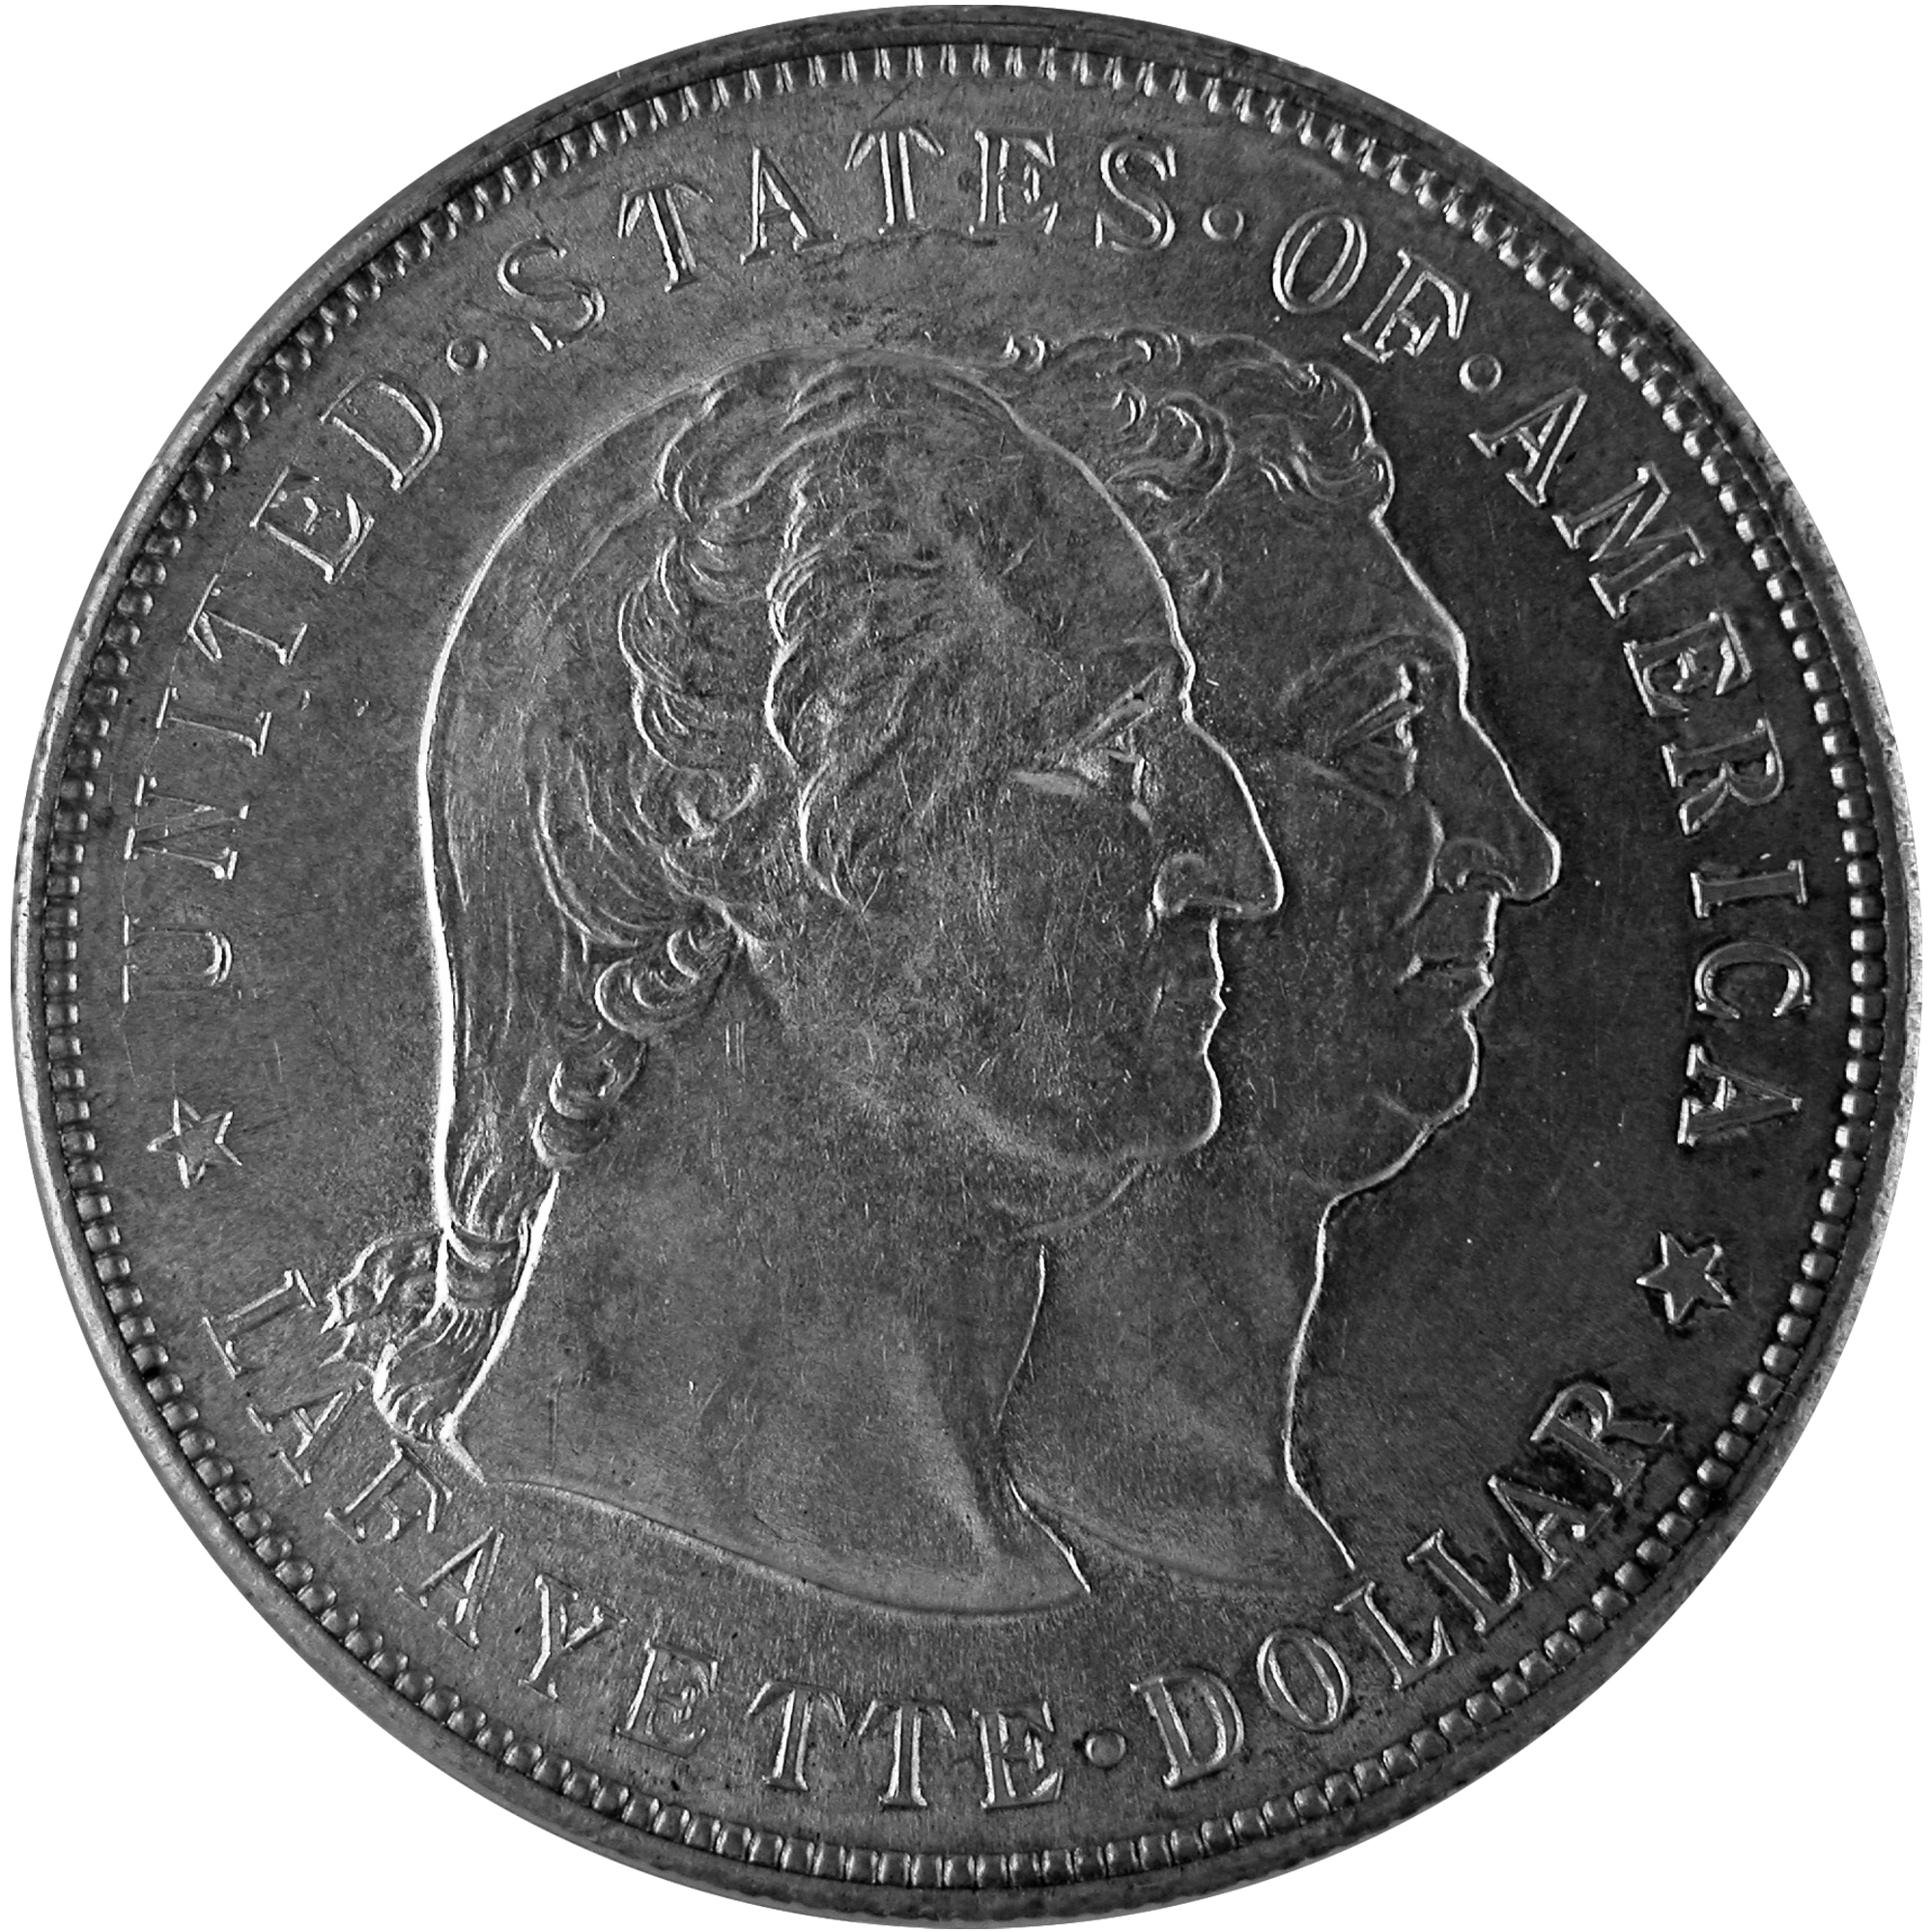 1900 General Lafayette Commemorative Silver One Dollar Coin Obverse